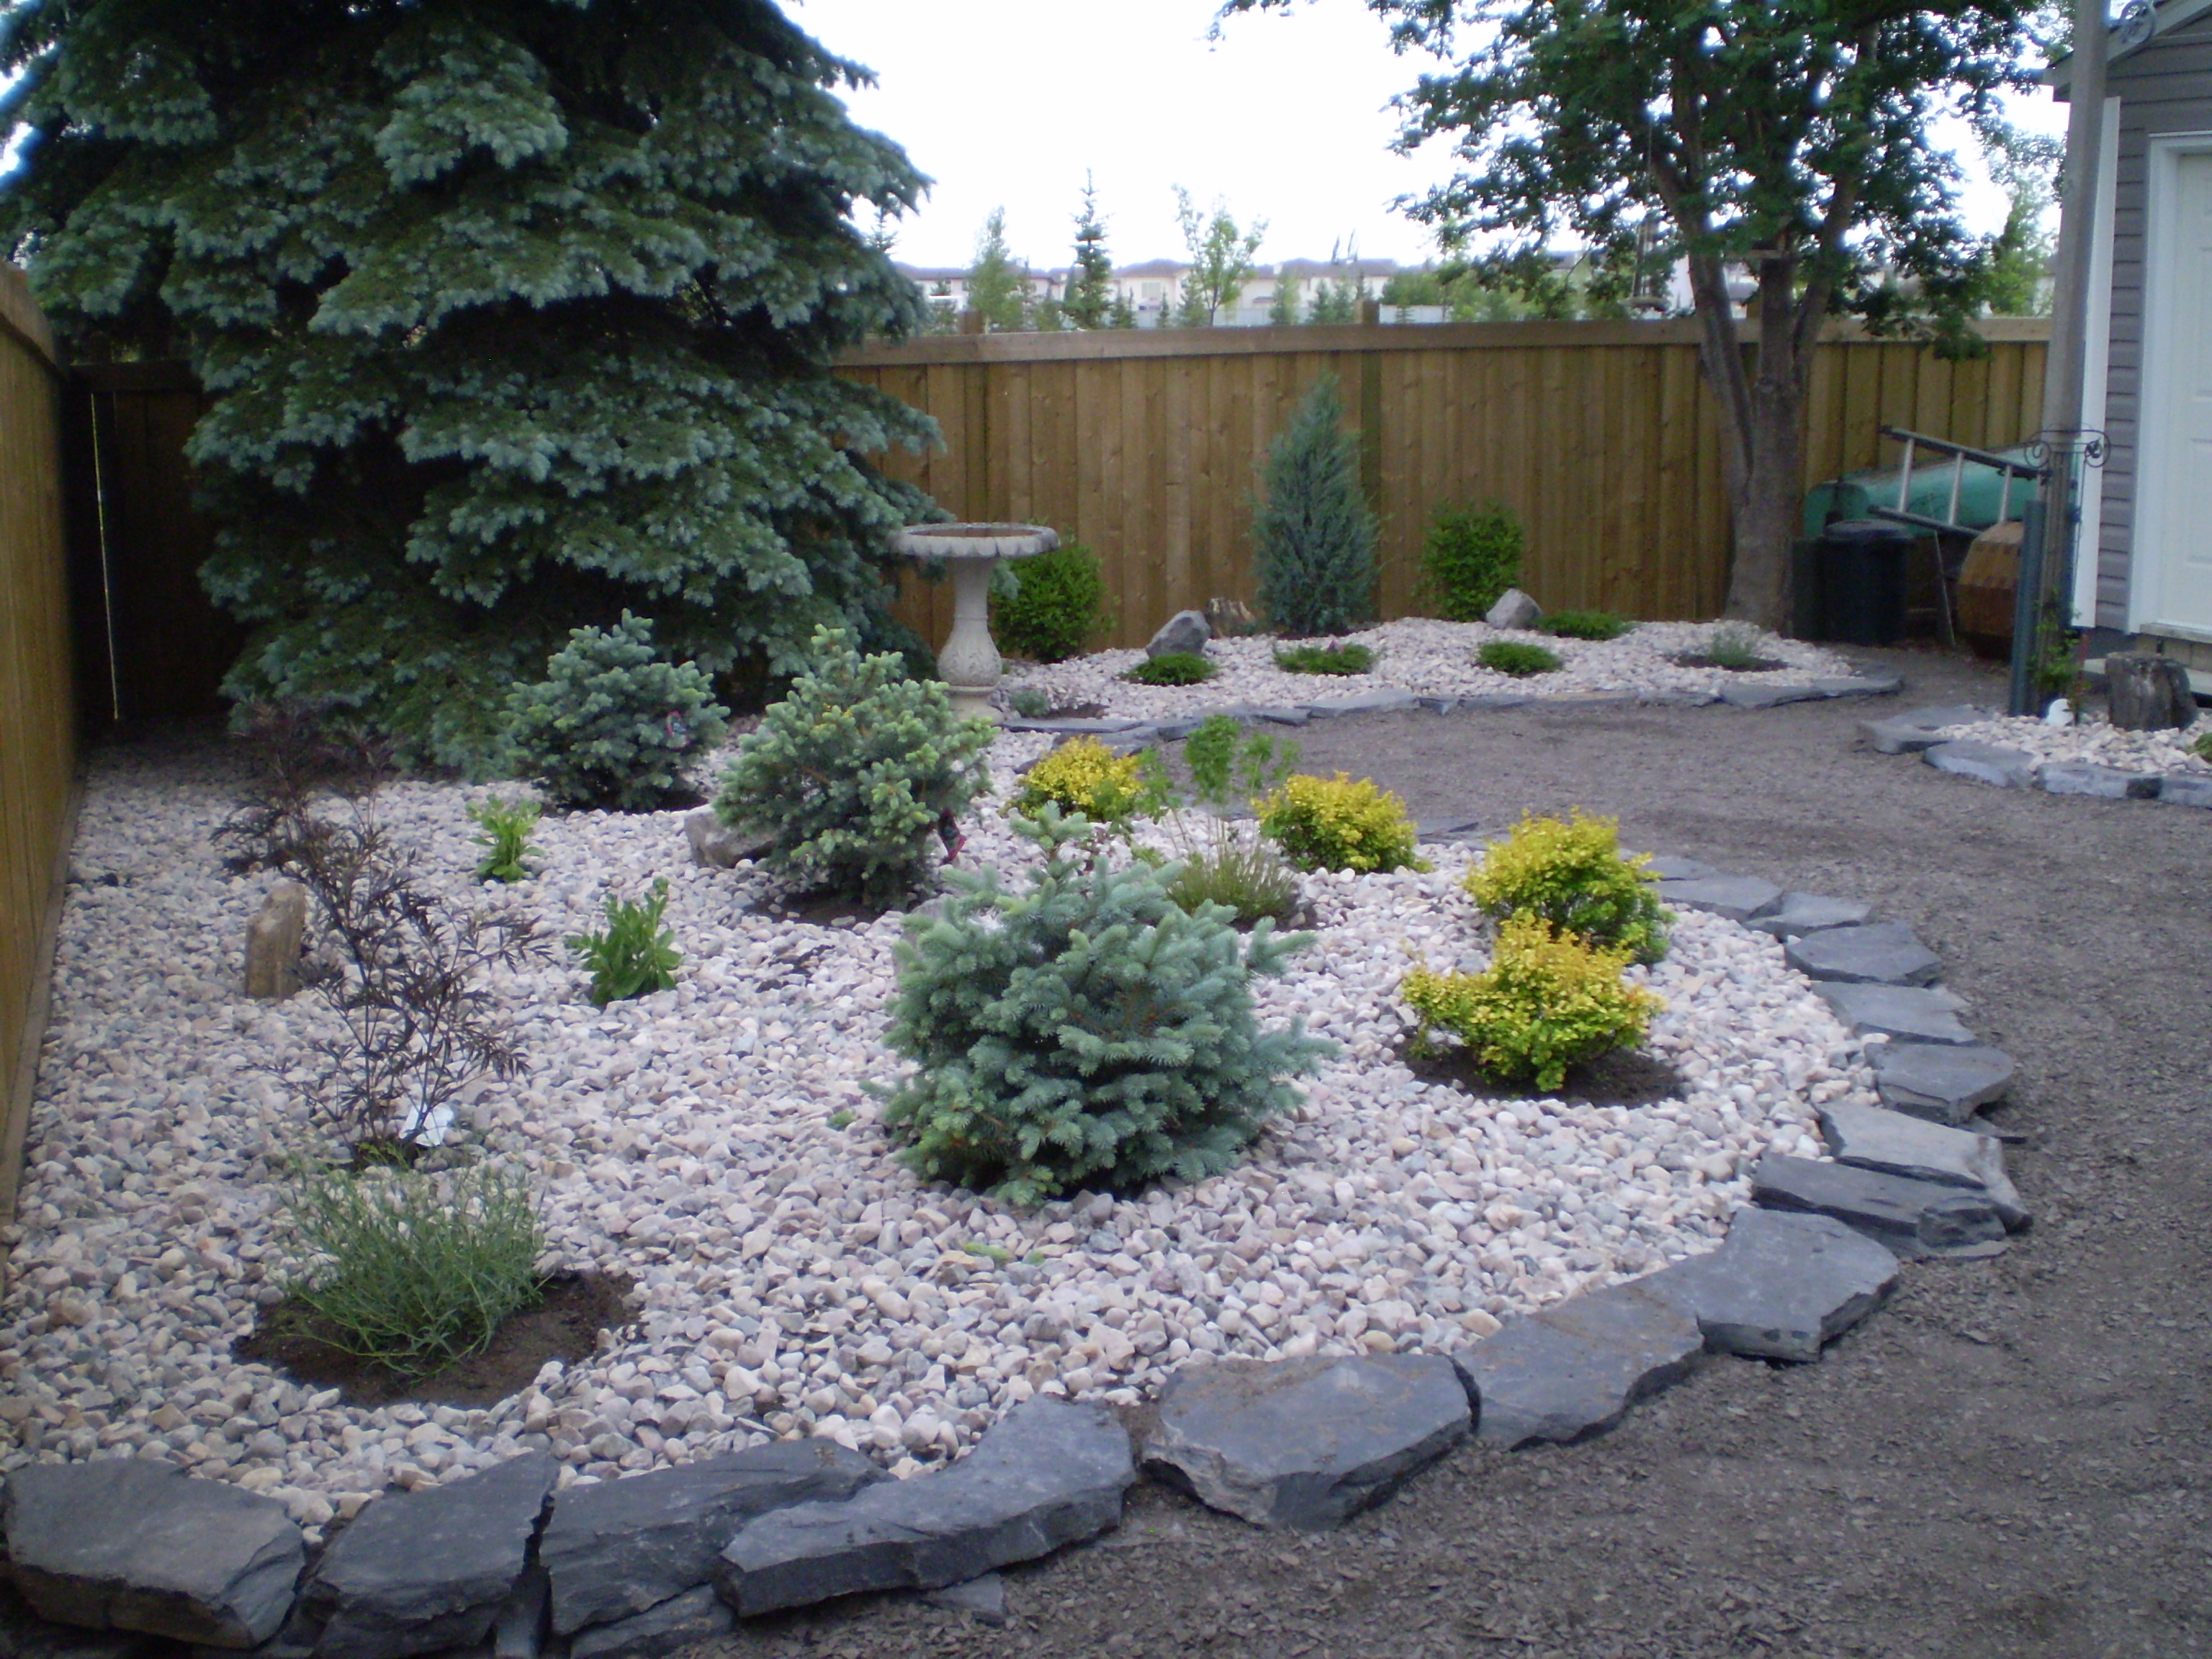 3 landscaping low maintenance backyard landscaping ideas for Backyard low maintenance landscaping ideas